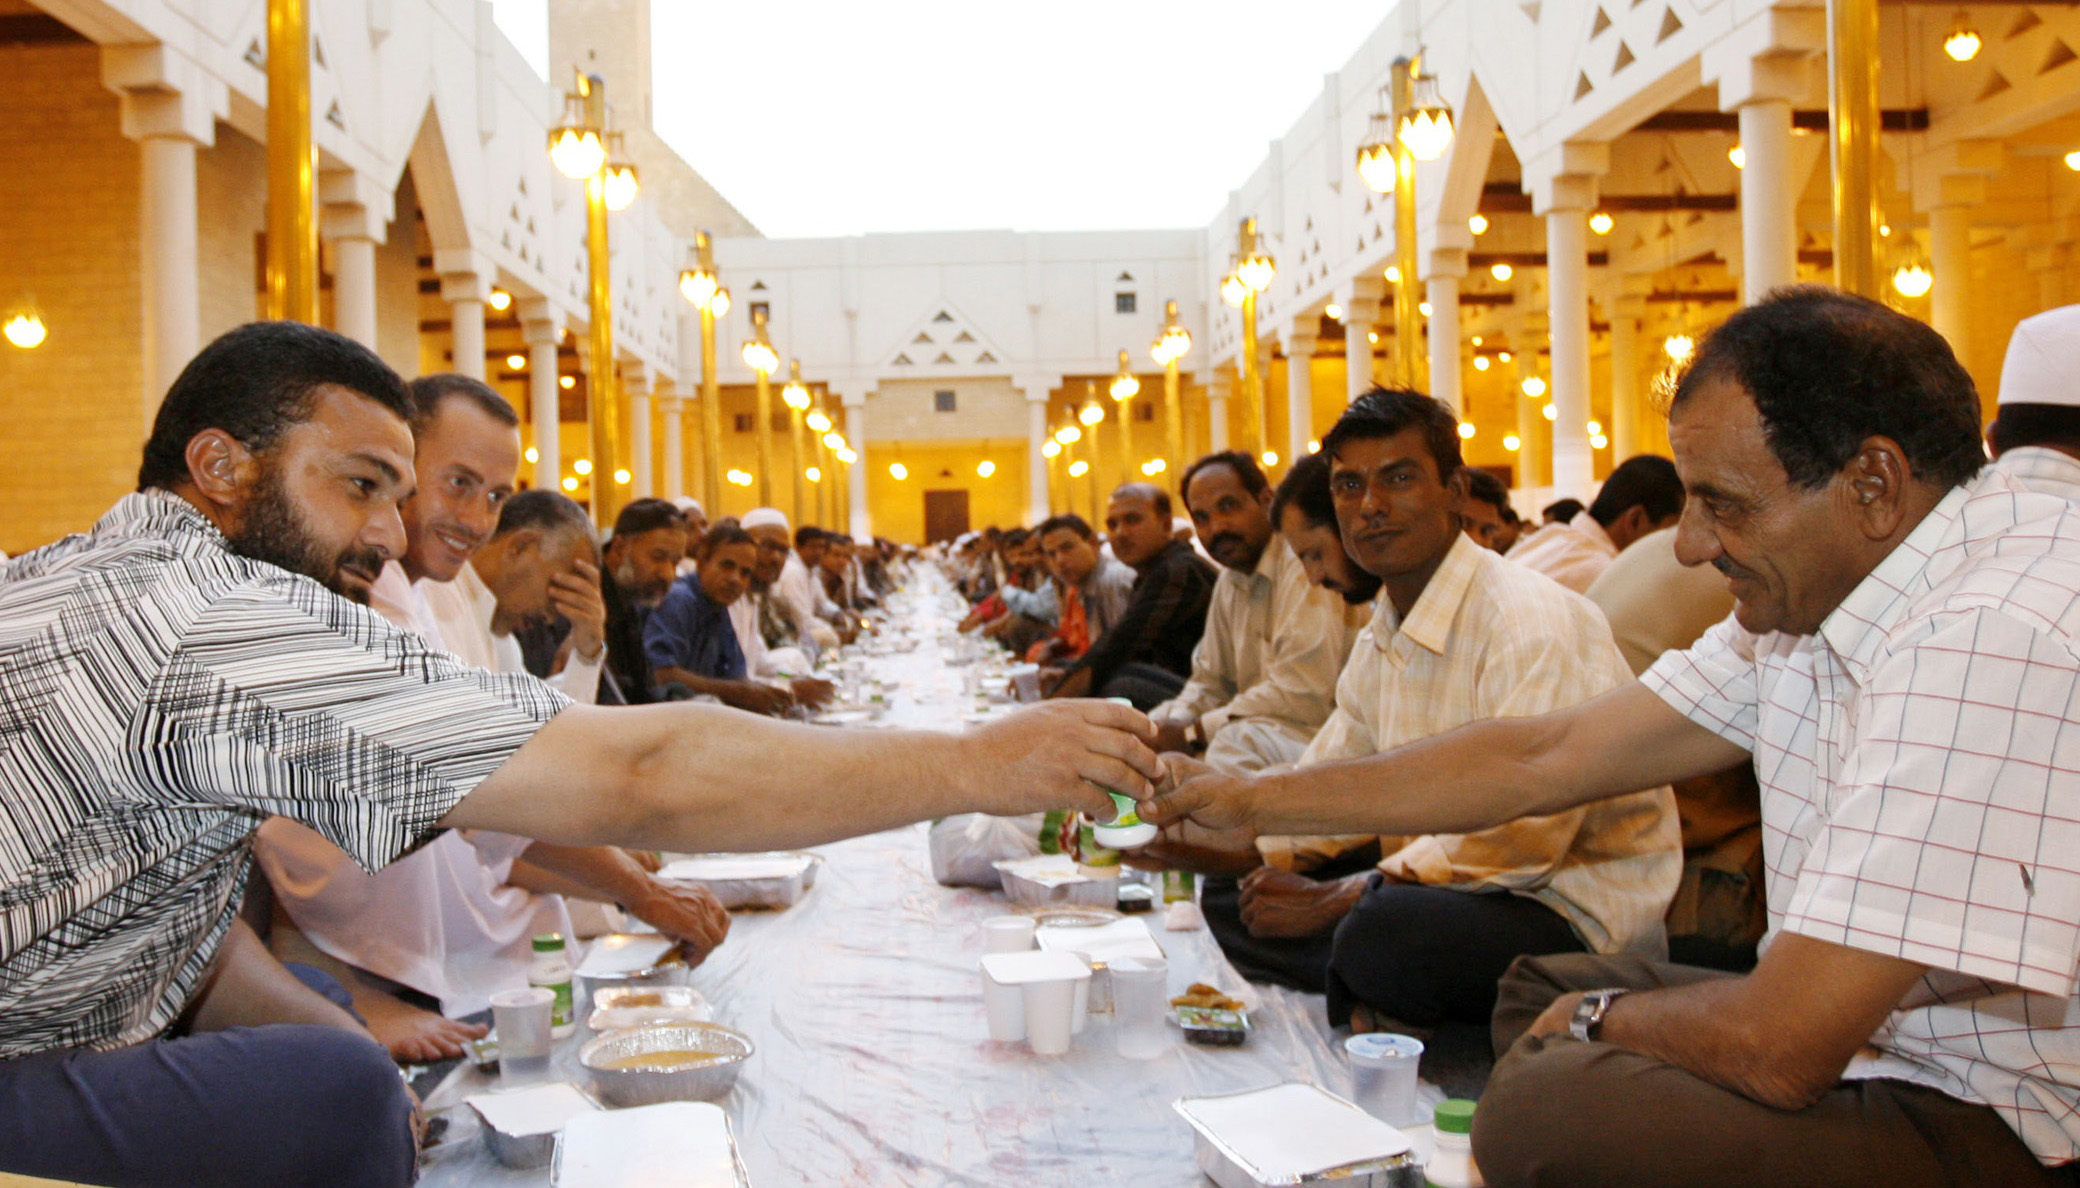 Foreign workers gather for a mass feast at the end of the first day of the Muslim fasting month of Ramadan in Riyadh